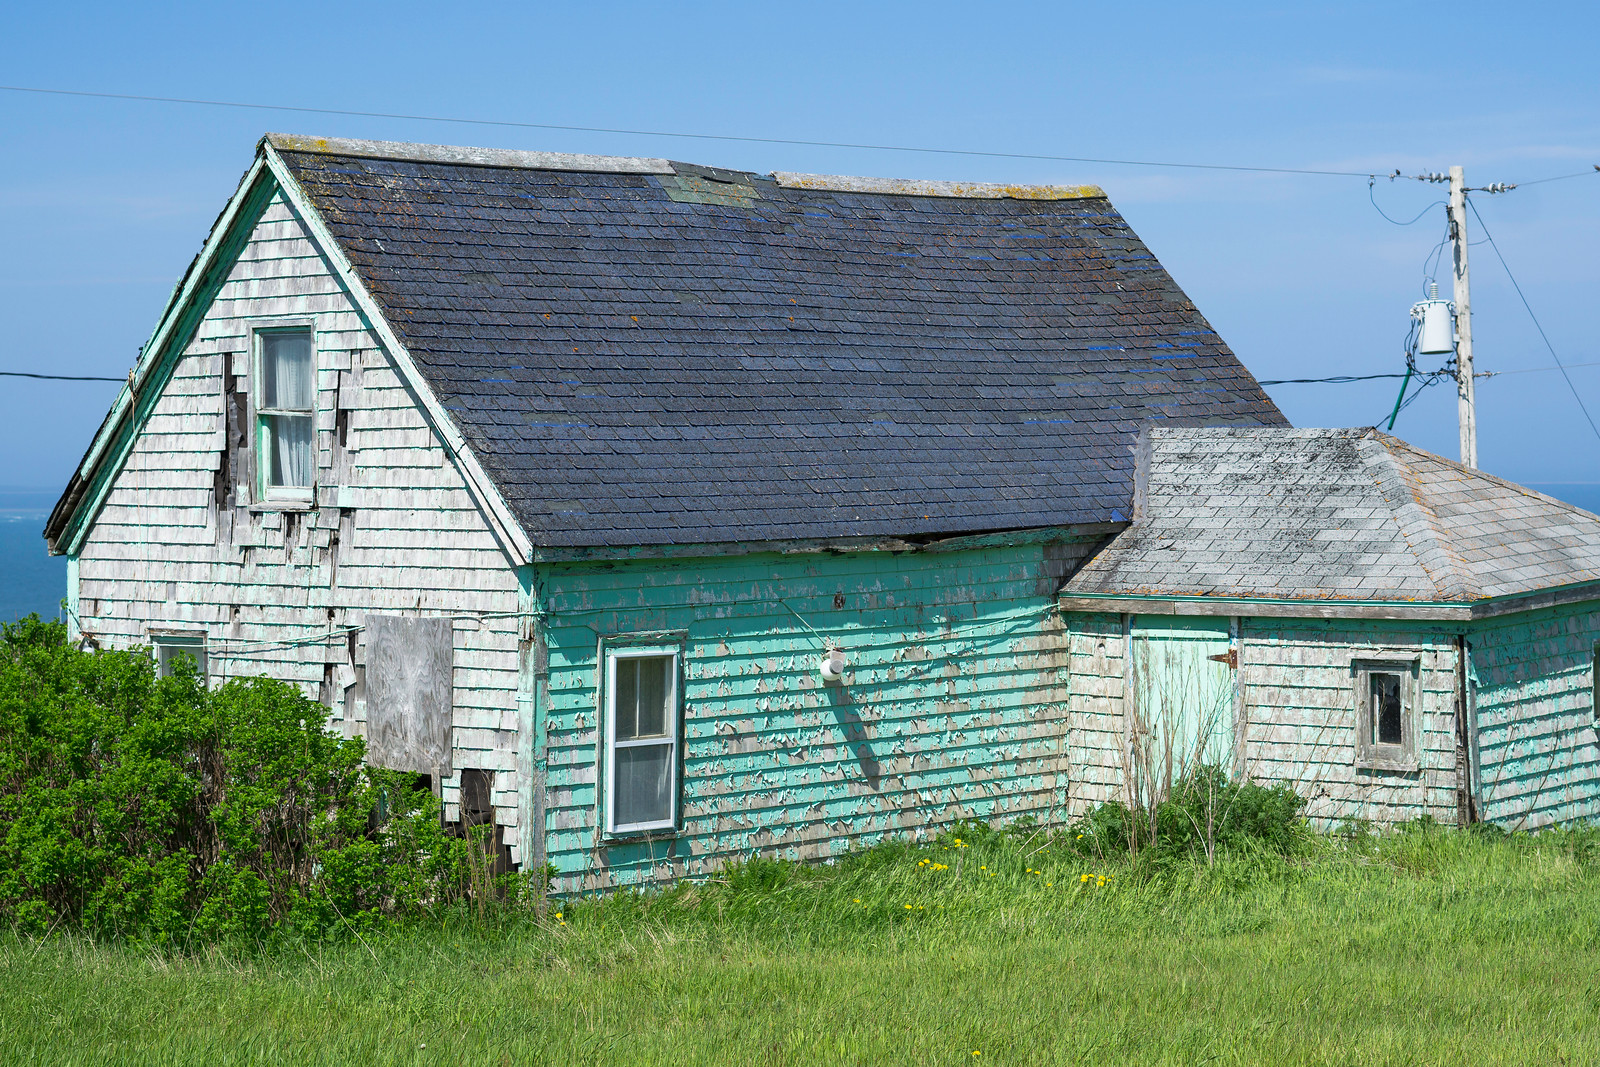 Worn but still beautiful on the isolated Île Entrée